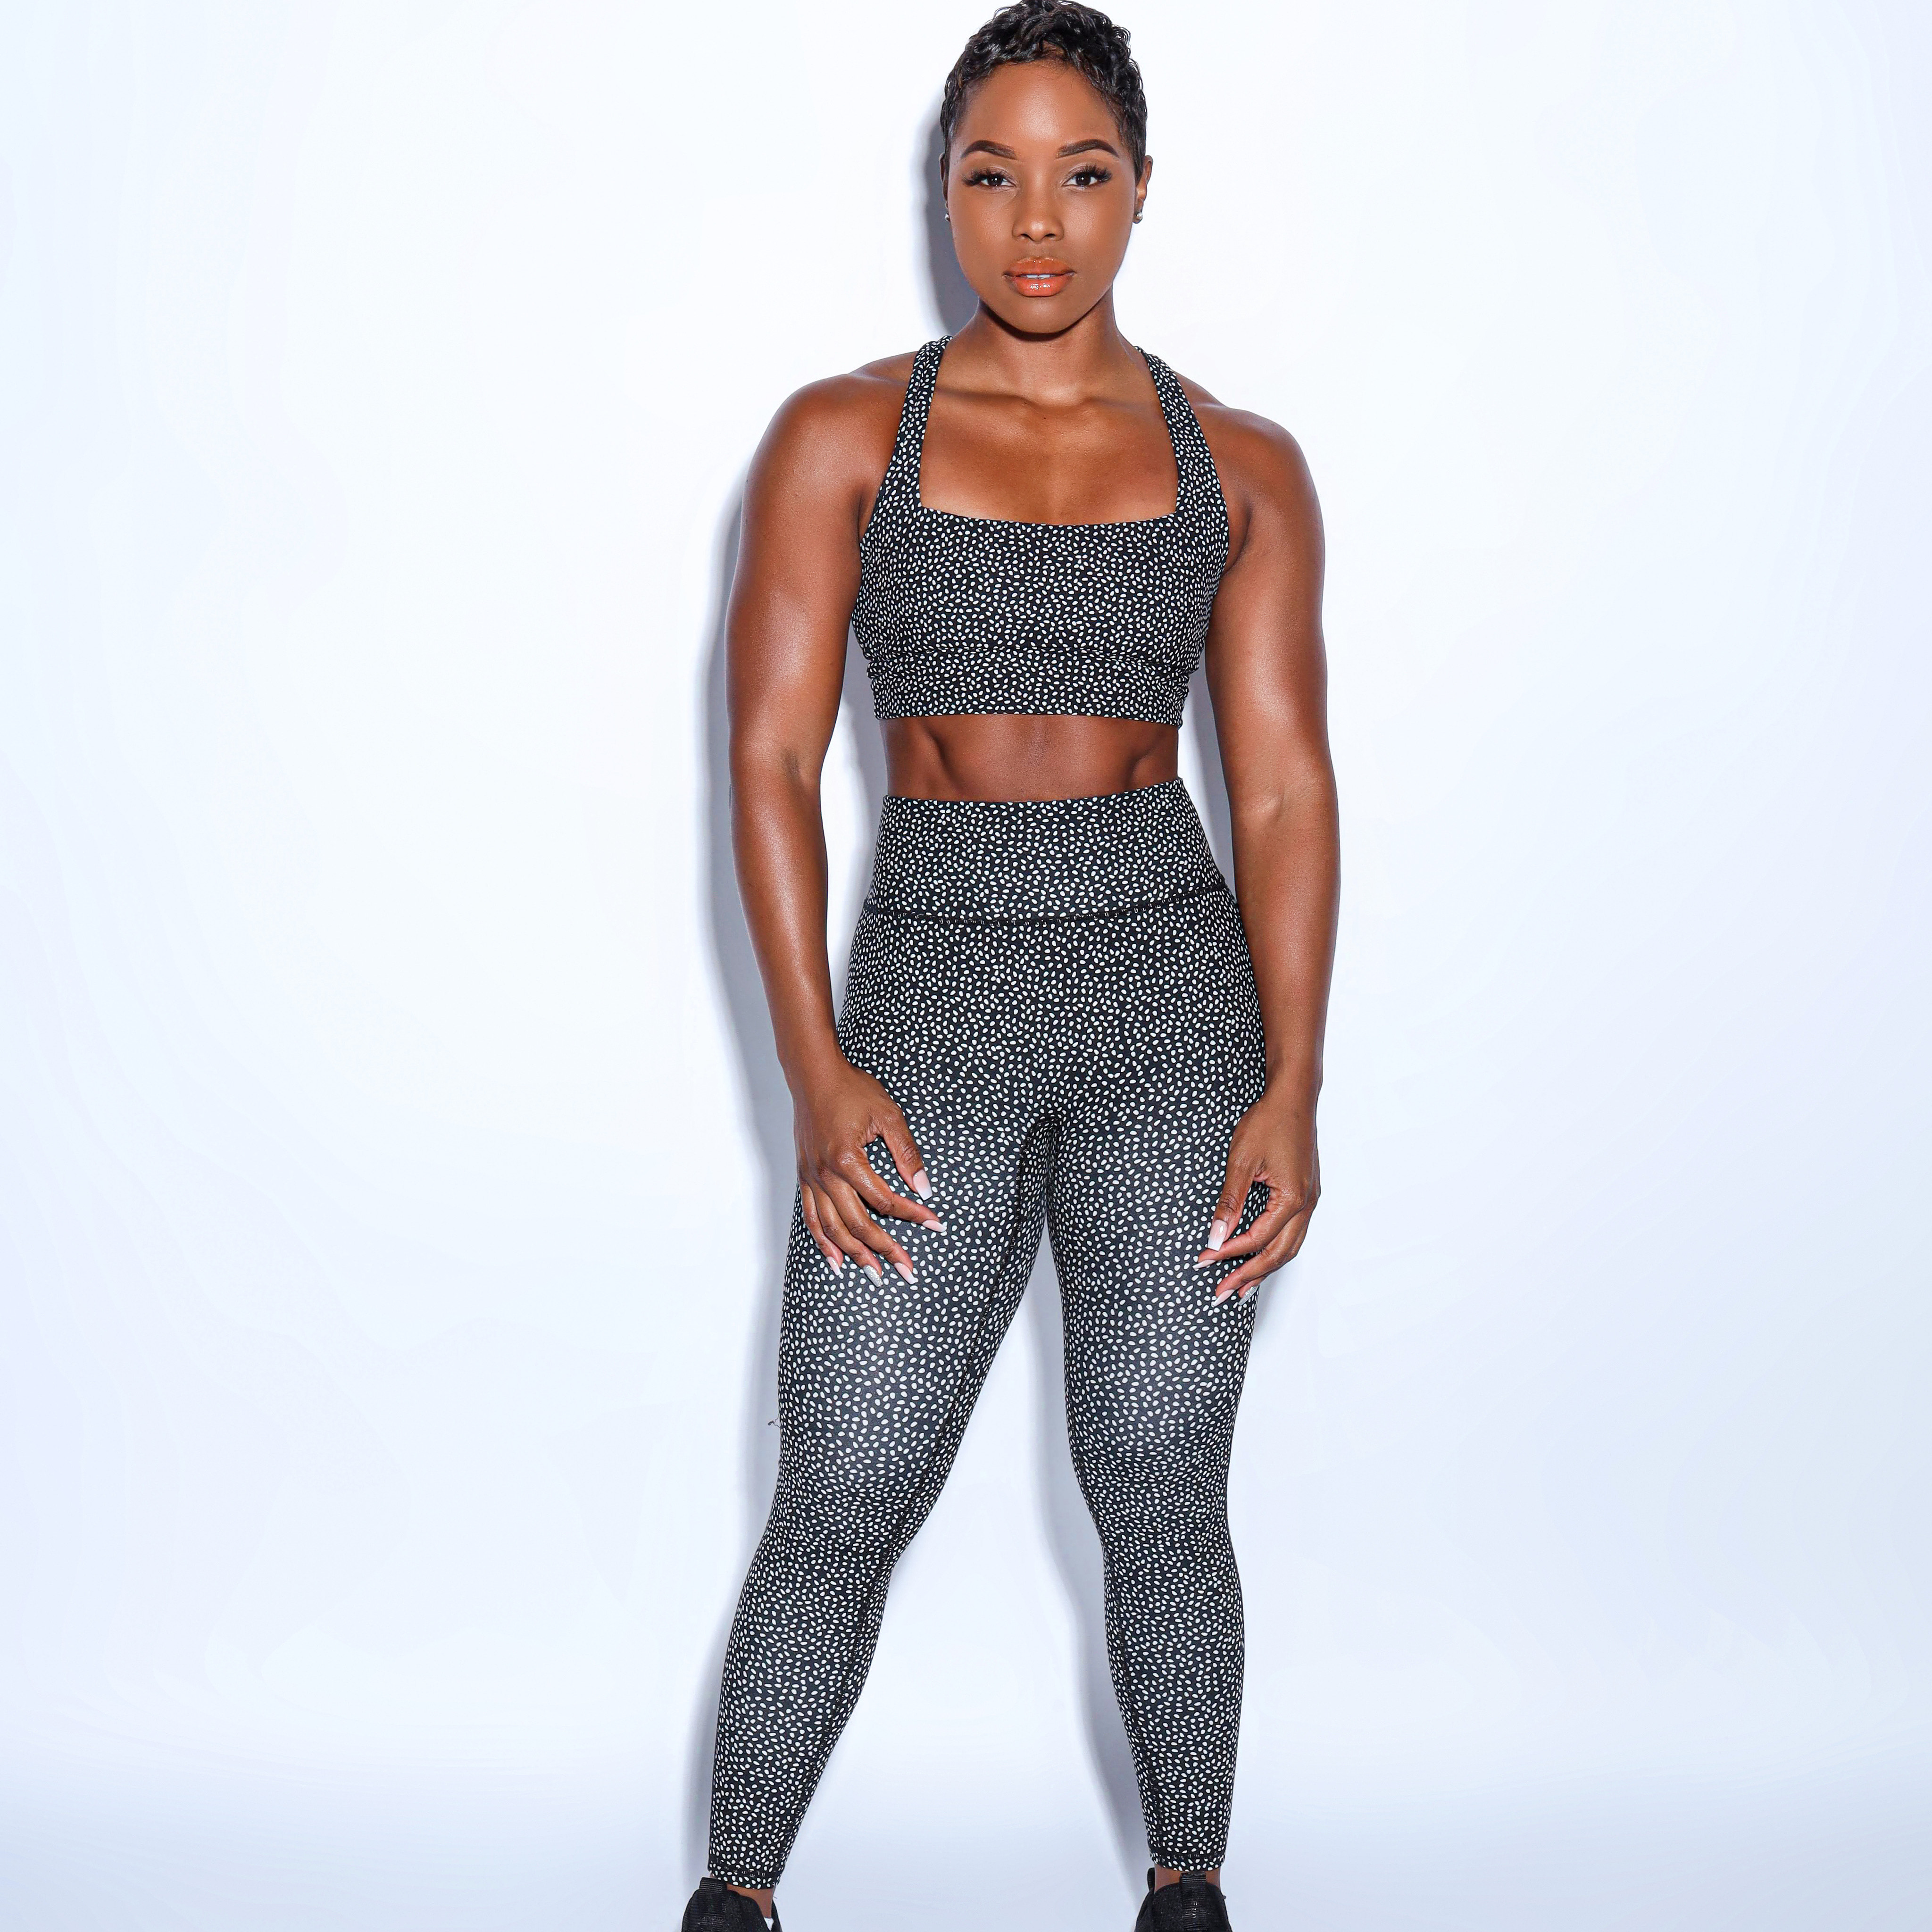 Raw Fitness and Destiny Monroe the Fitness Professional